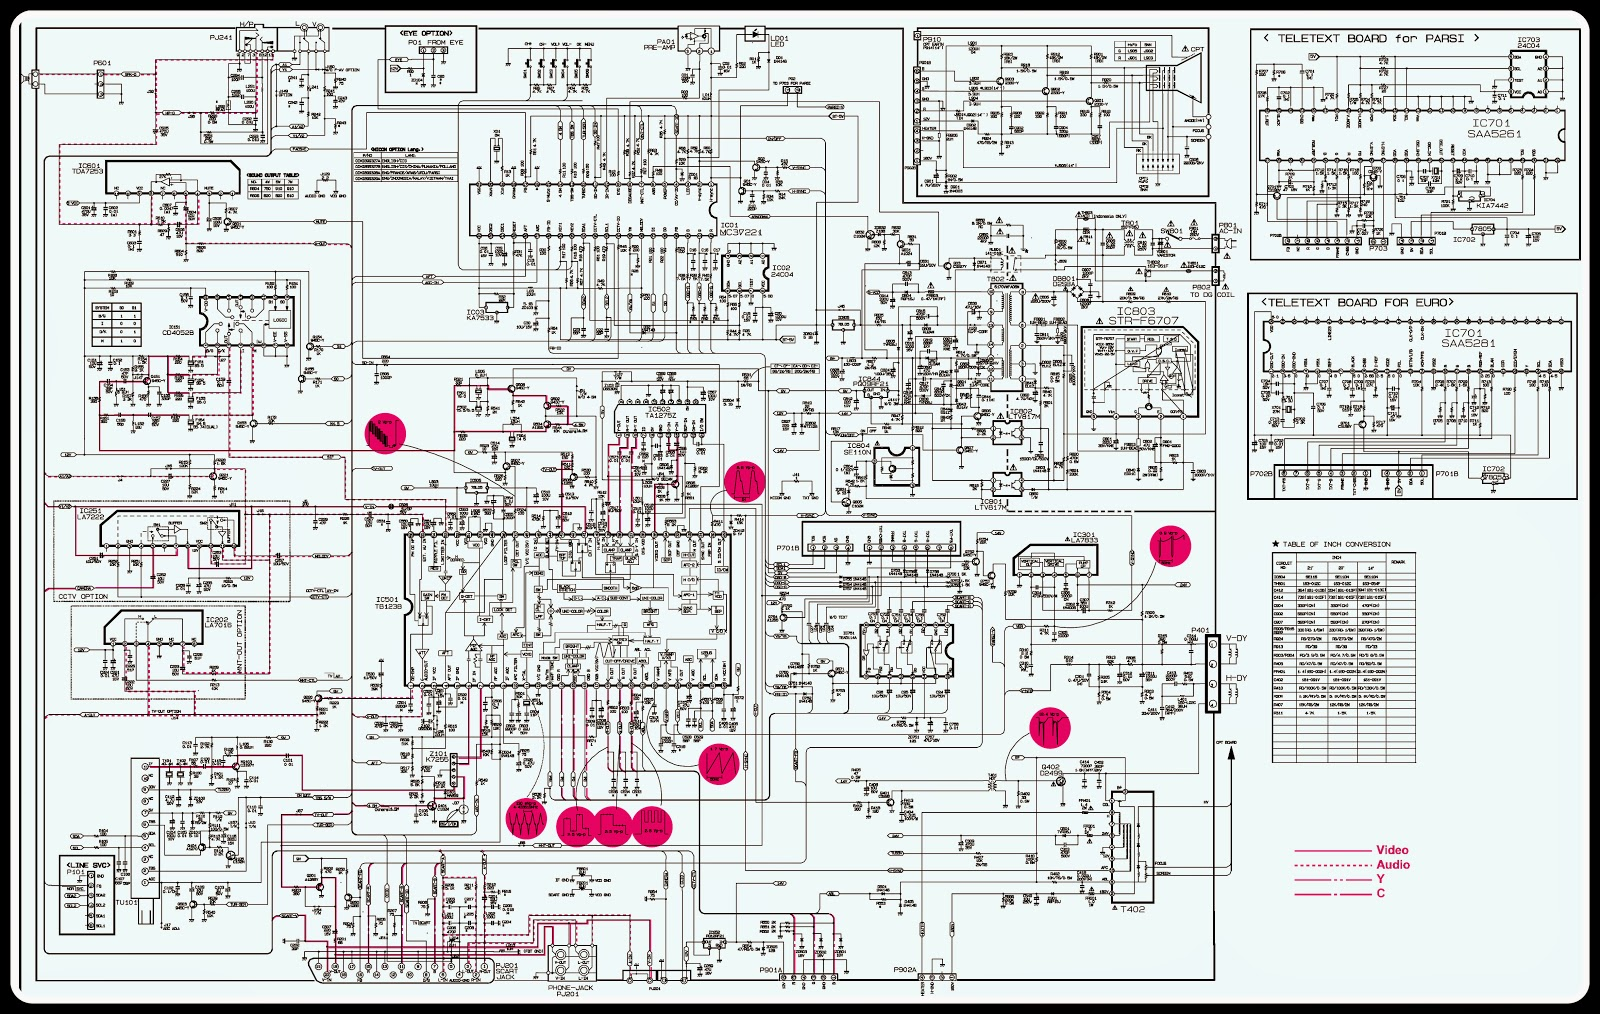 lg%2Bcrt%2Btv.bmp lg cf20f schematic (circuit diagram) 20 inch crt tv electro help lg wiring diagrams at crackthecode.co